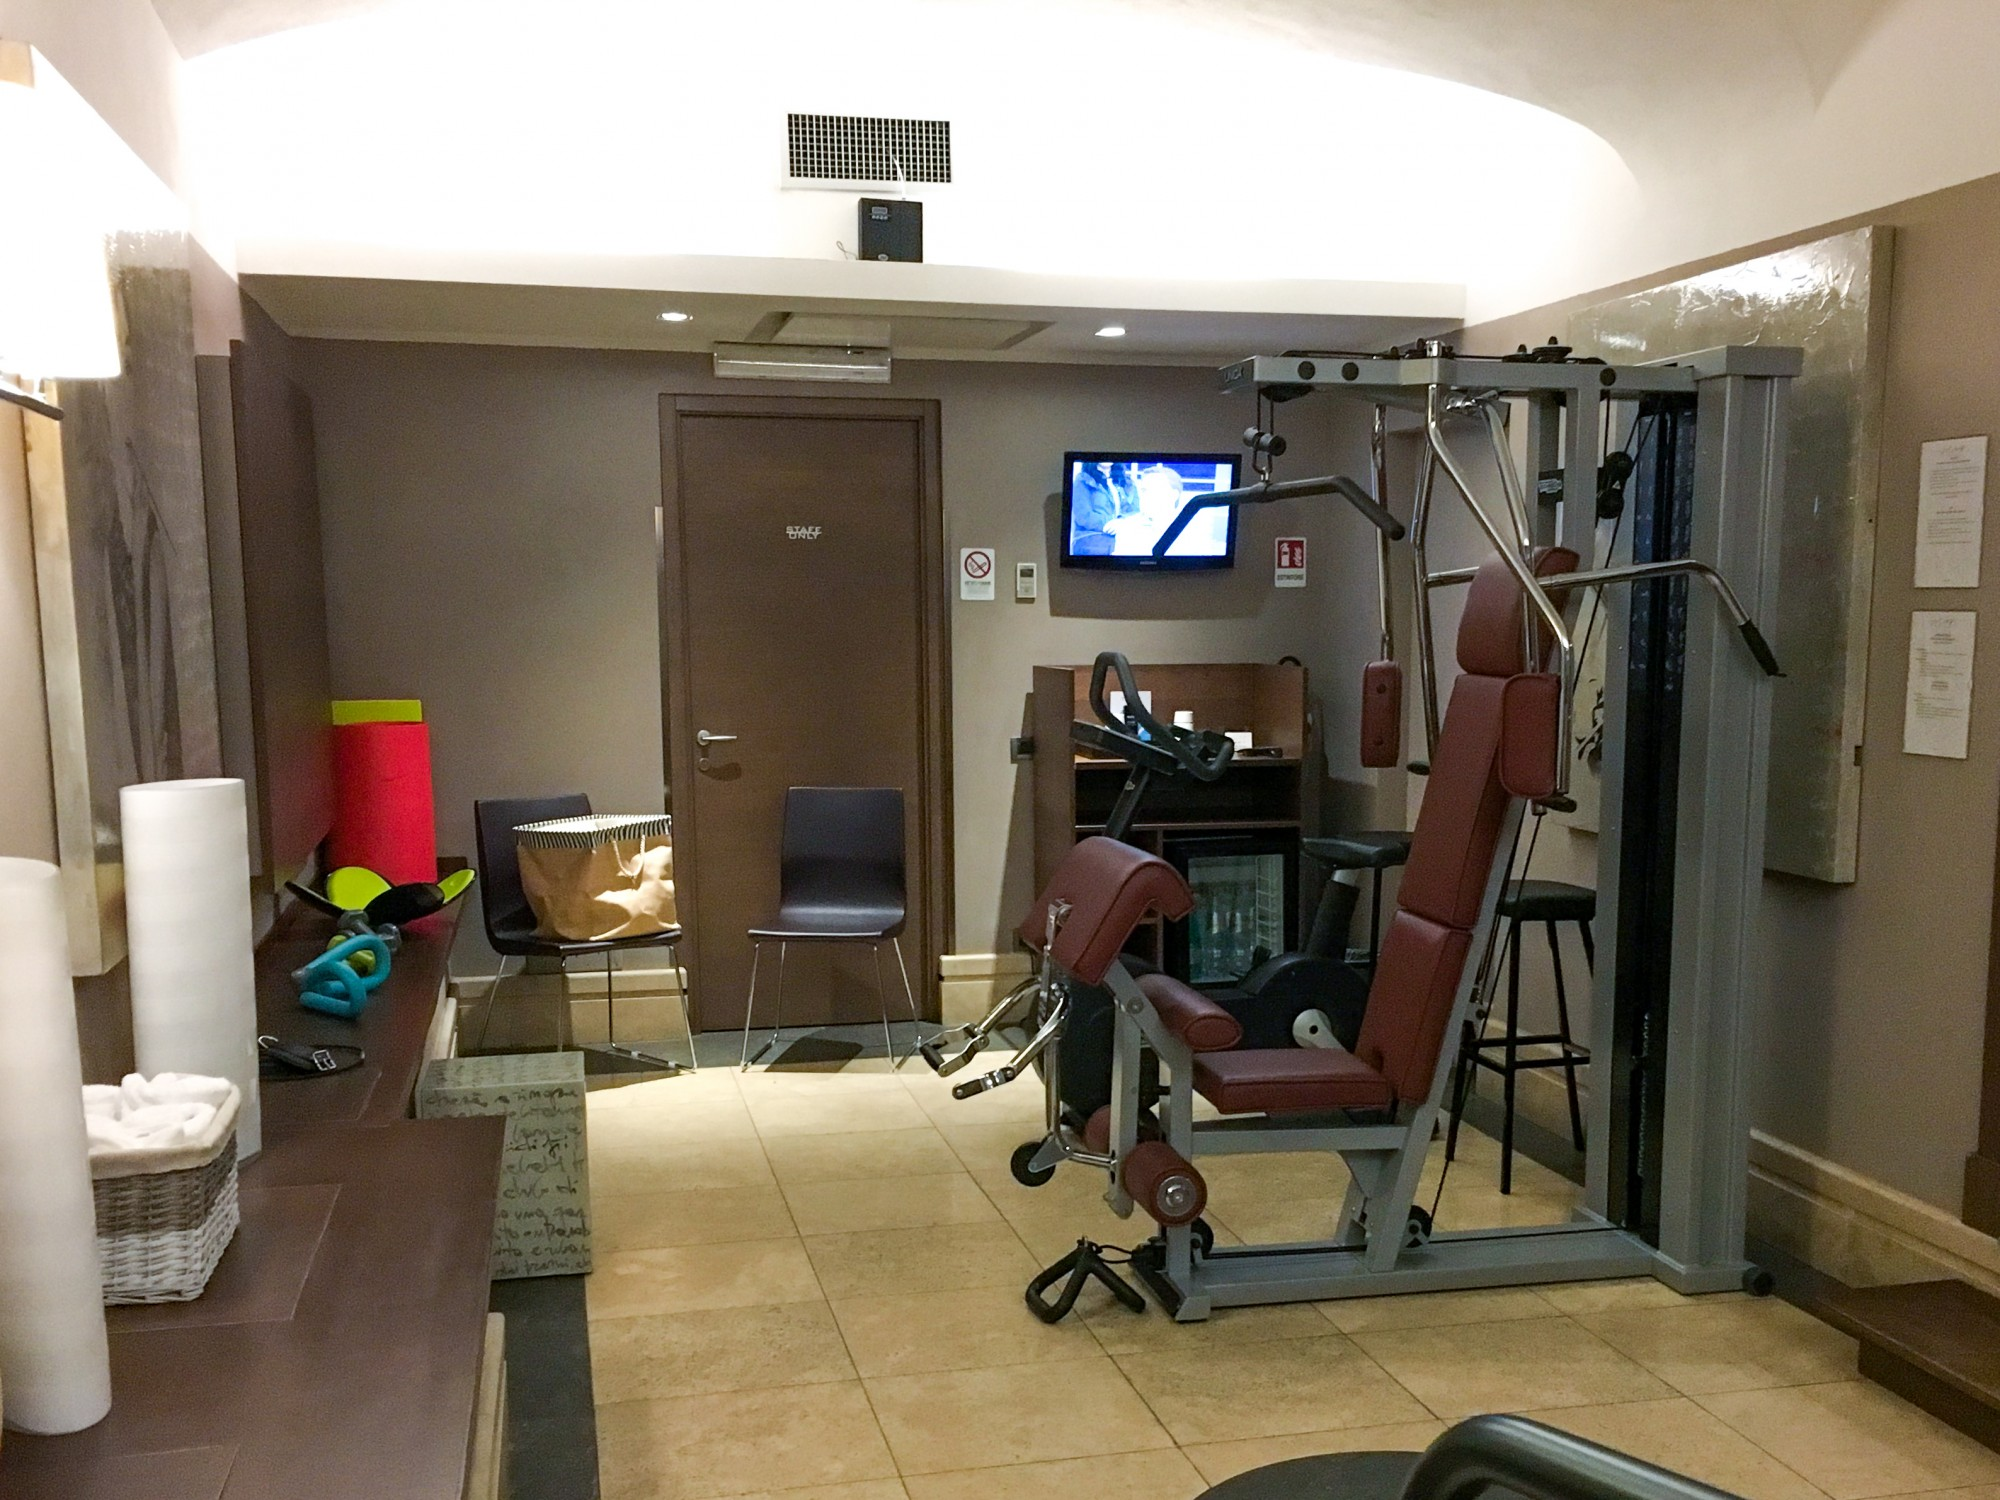 The Independent Hotel gym